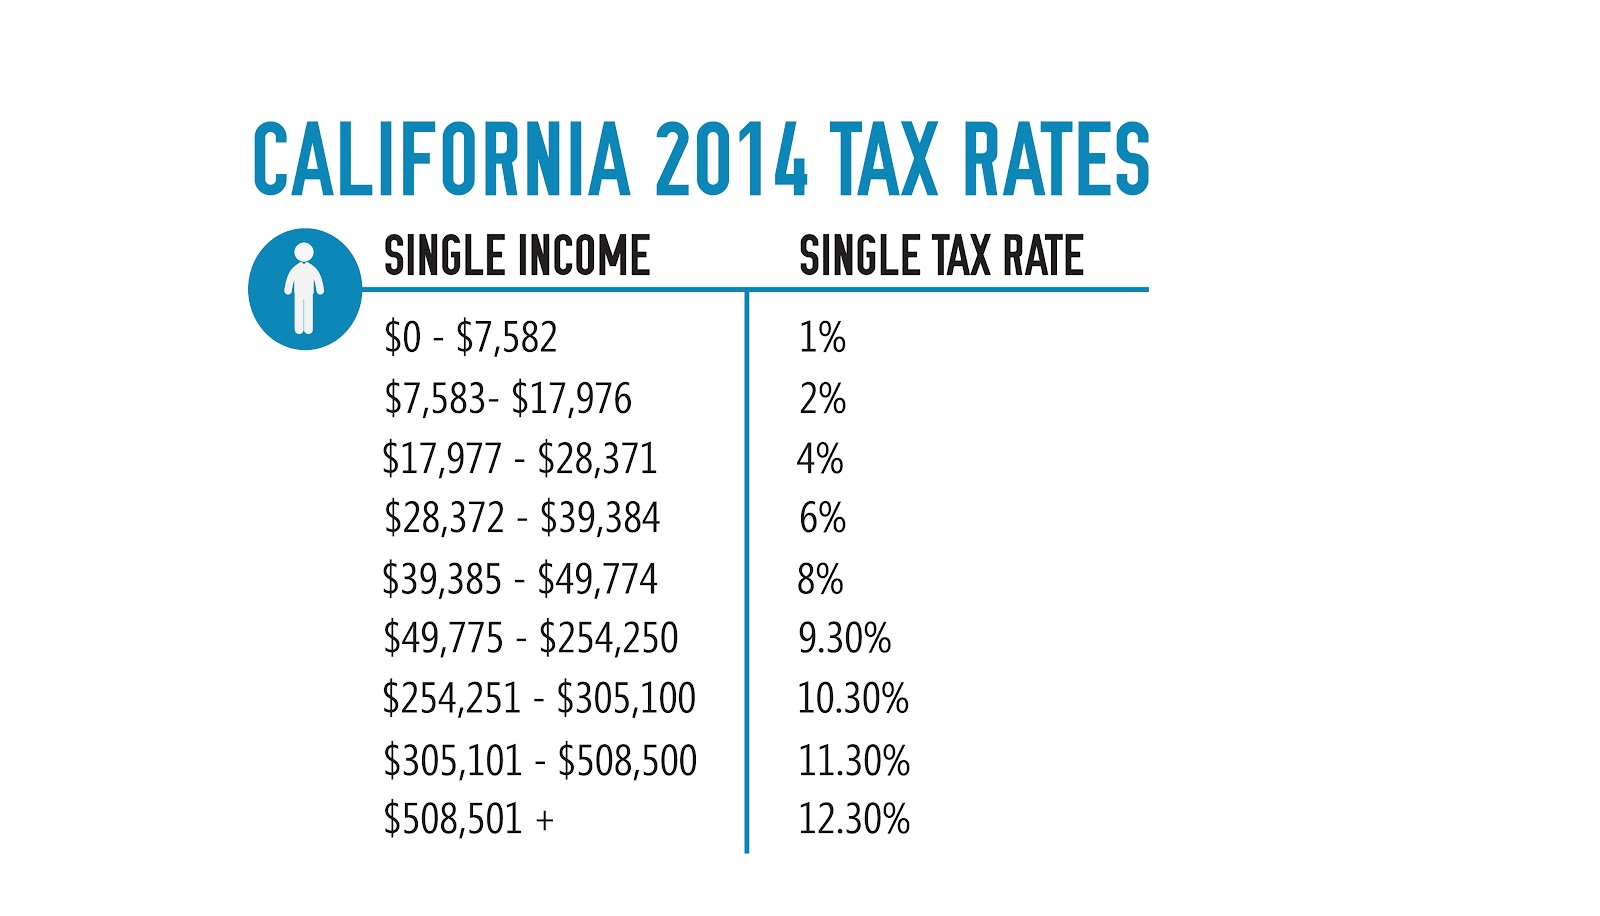 California 2014 Tax Rates.jpg